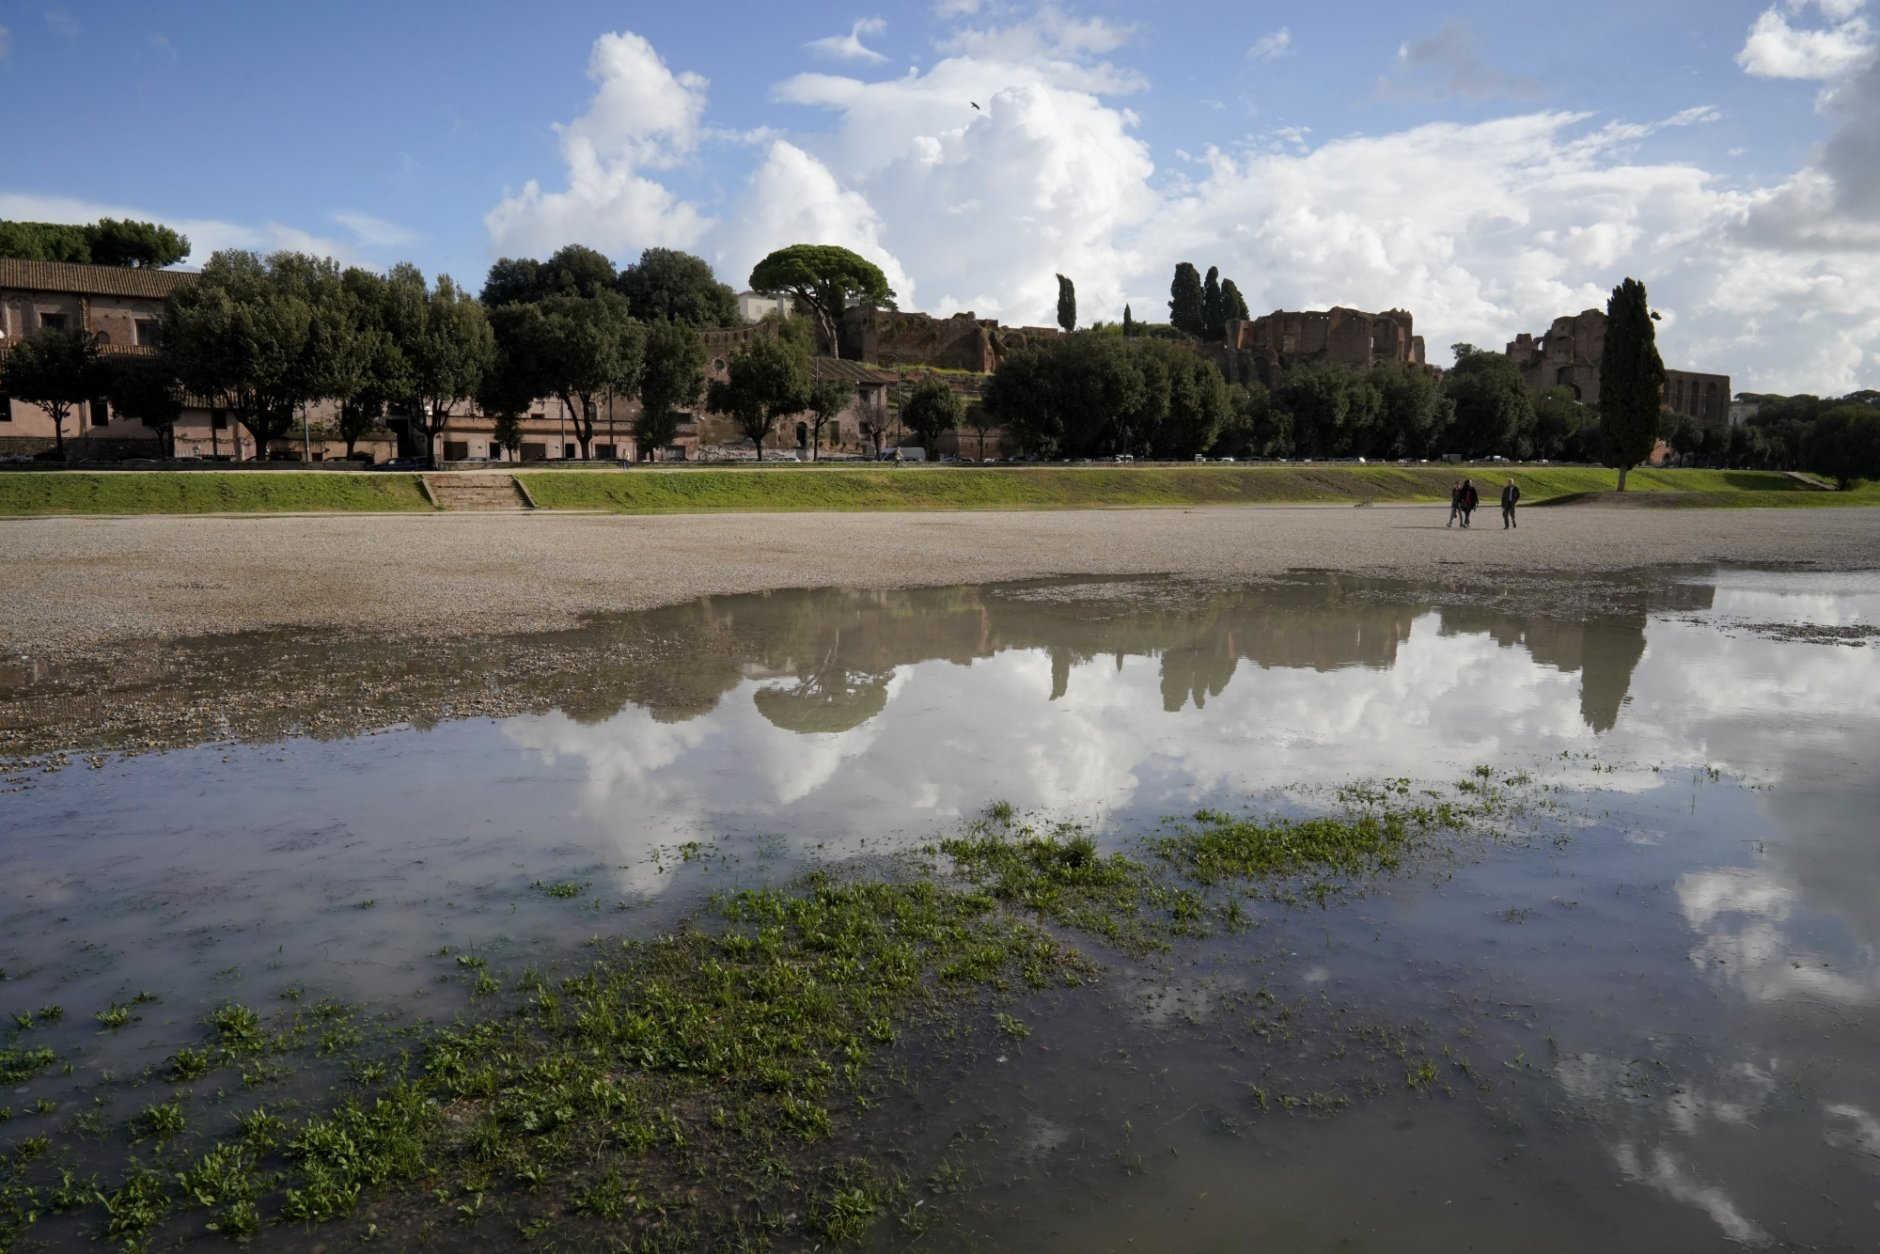 """People go for a walk in a partially flooded Circus Maximus a day after strong winds and rain hit the city, in Rome, Tuesday, Oct. 30, 2018. The national Civil Protection Agency has issued red and orange alerts -- meaning possible """"loss of life"""" from landslides, floods, and infrastructural damage -- due to an Atlantic storm system that has brought torrential rains and hail, electrical storms, powerful winds and high seas to Italy from North to South. (AP Photo/Andrew Medichini)"""